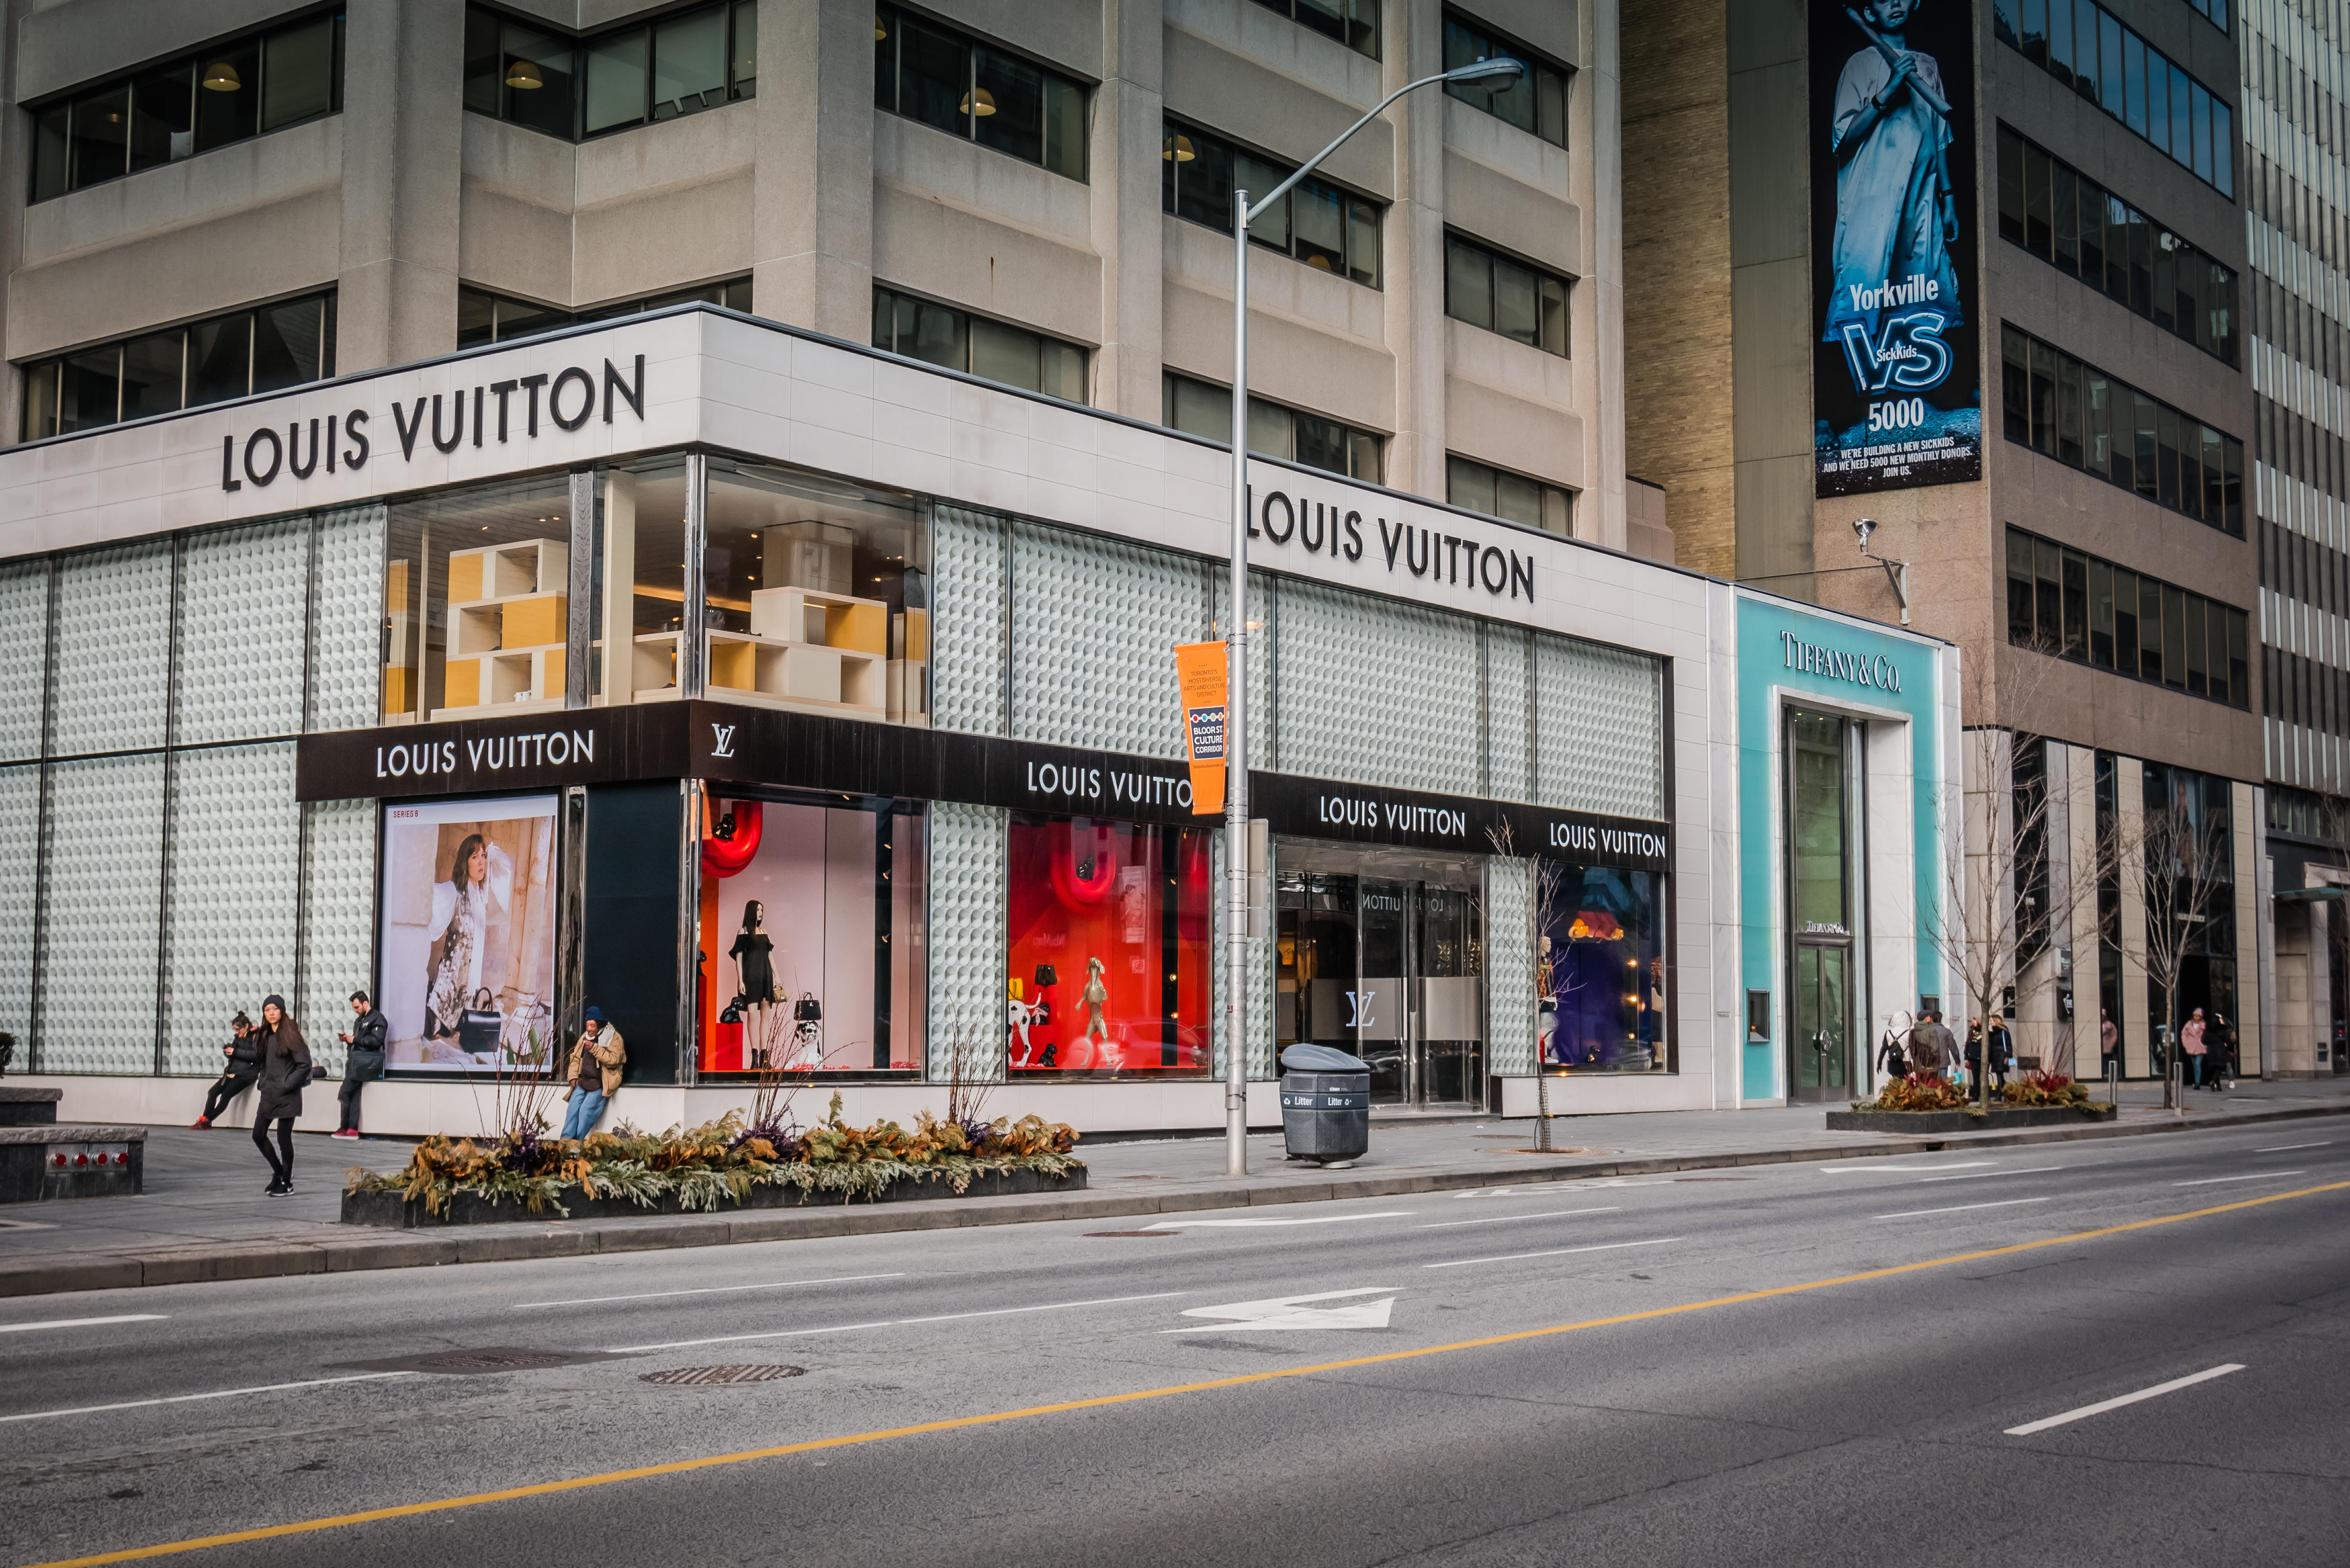 louis vuitton on bloor street toronto